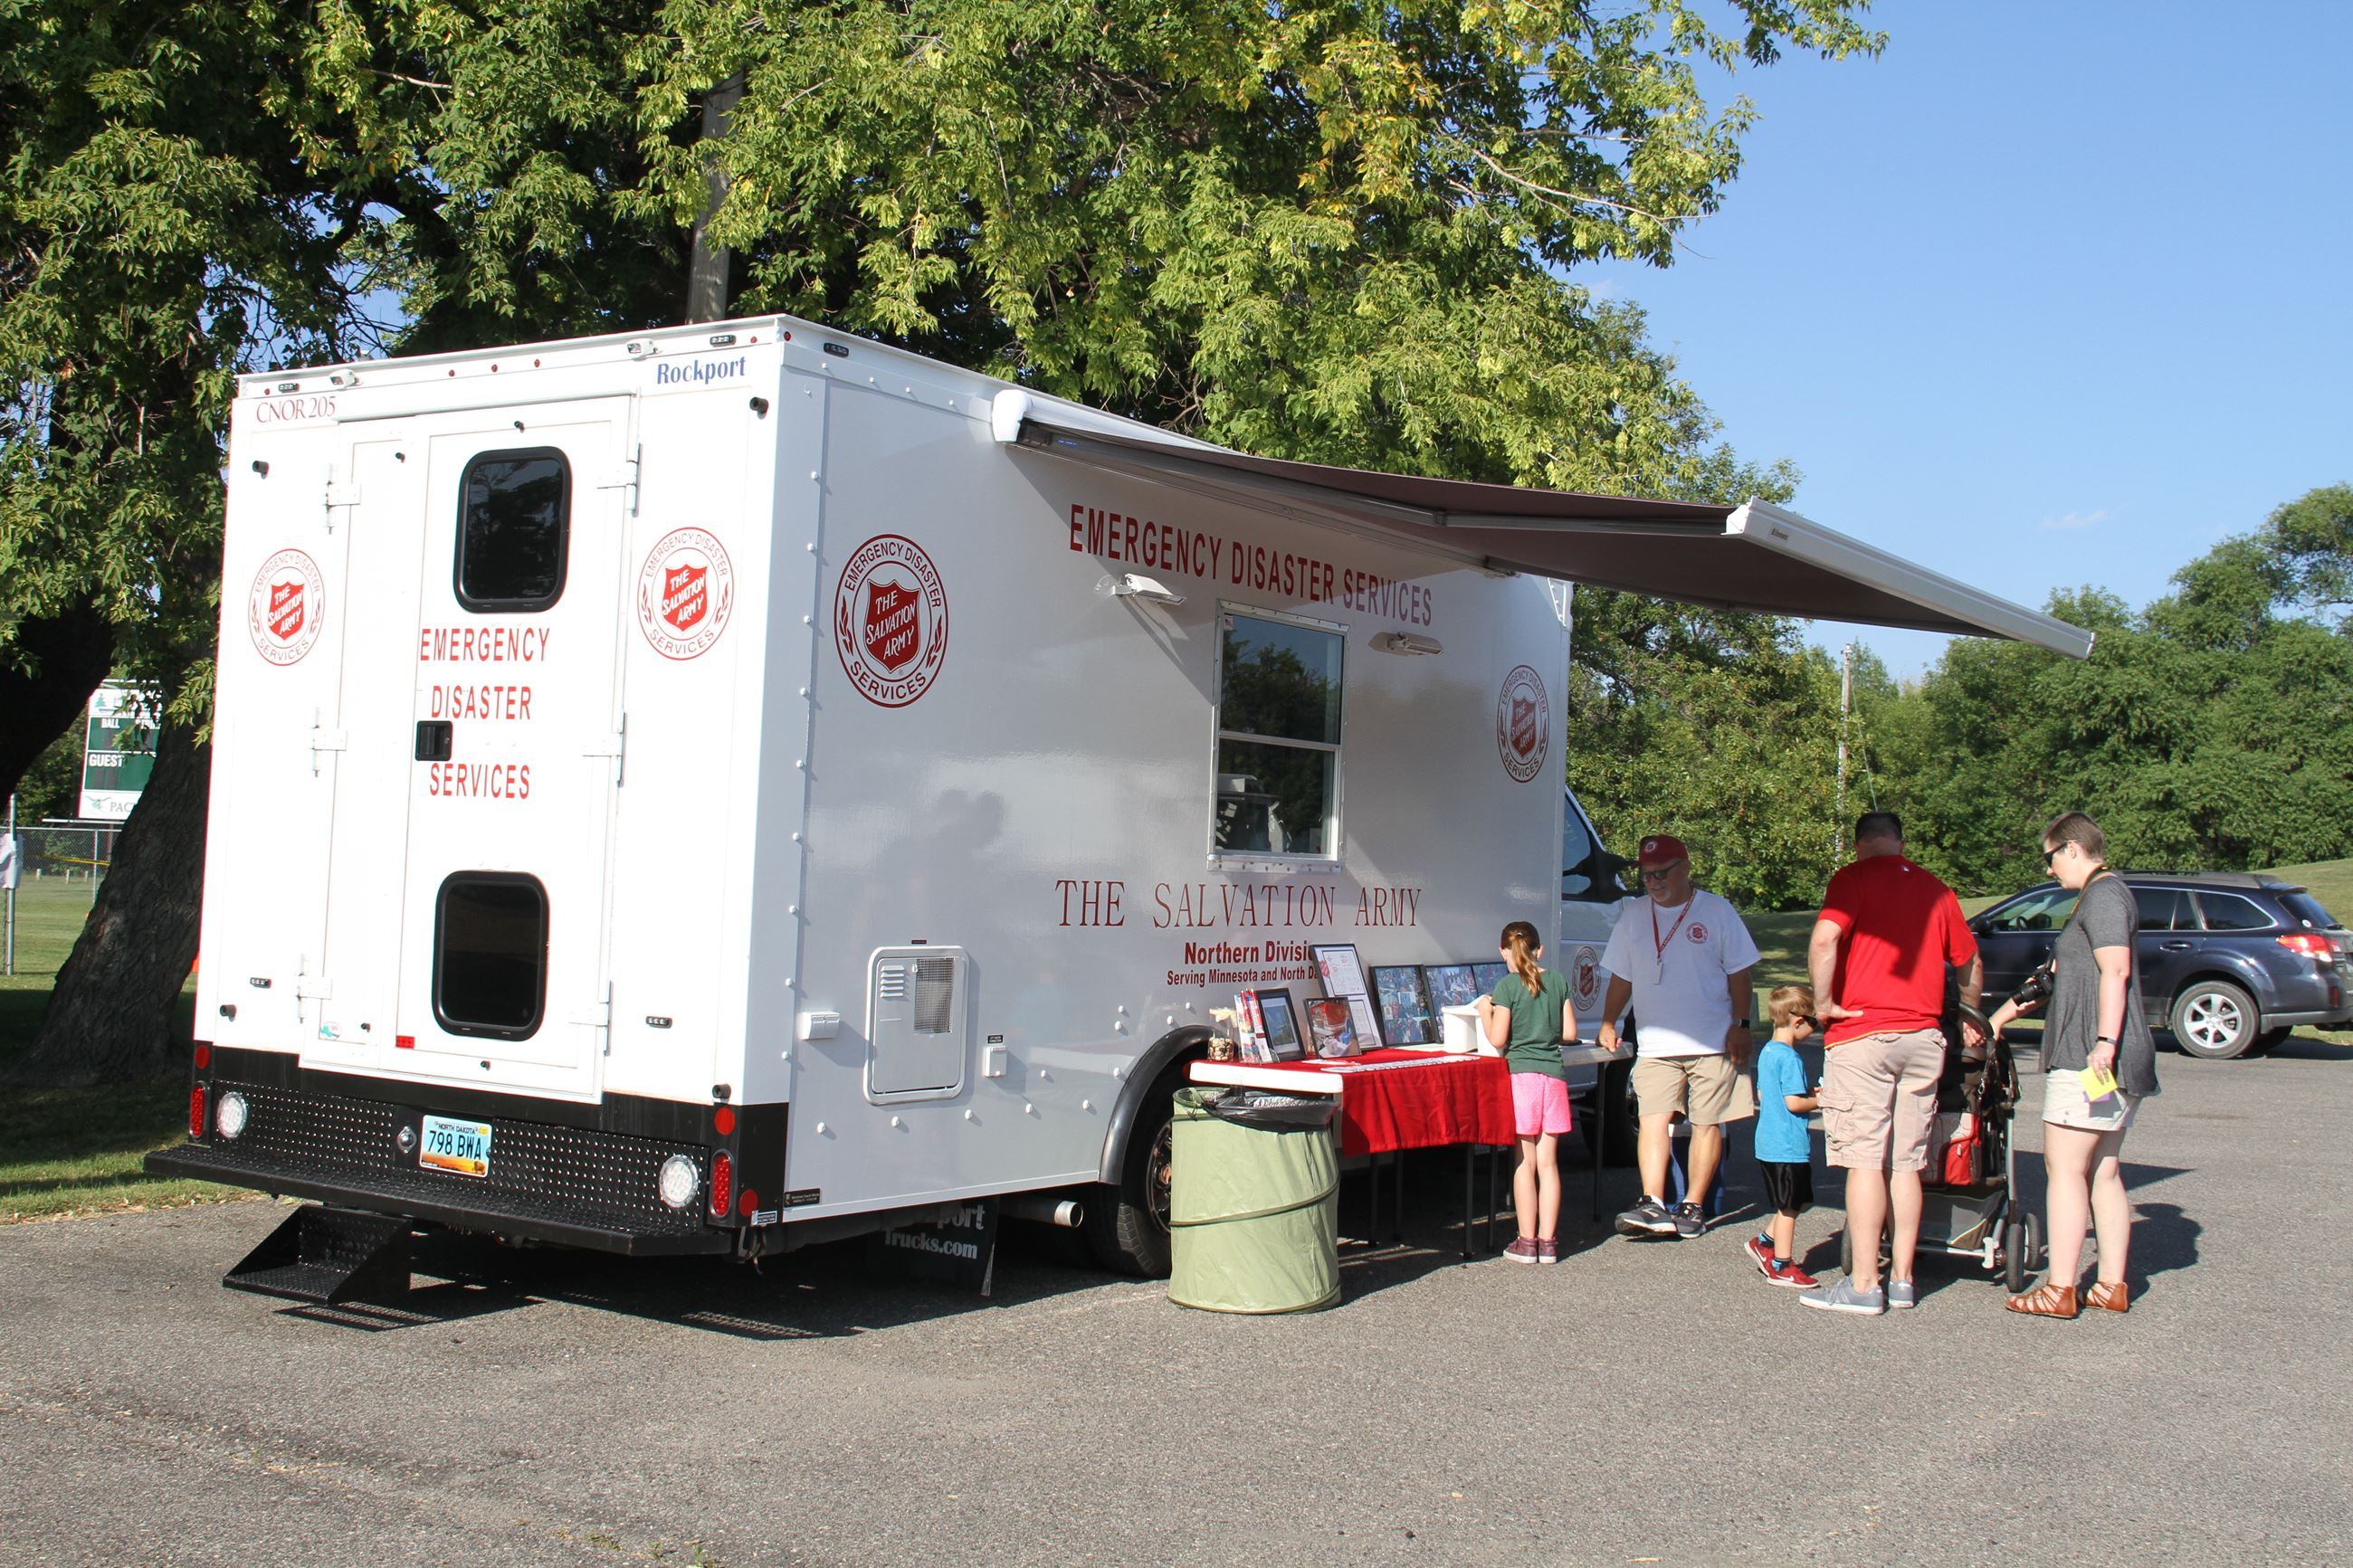 Attendees learn more about The Salvation Army's Emergency Disaster Services